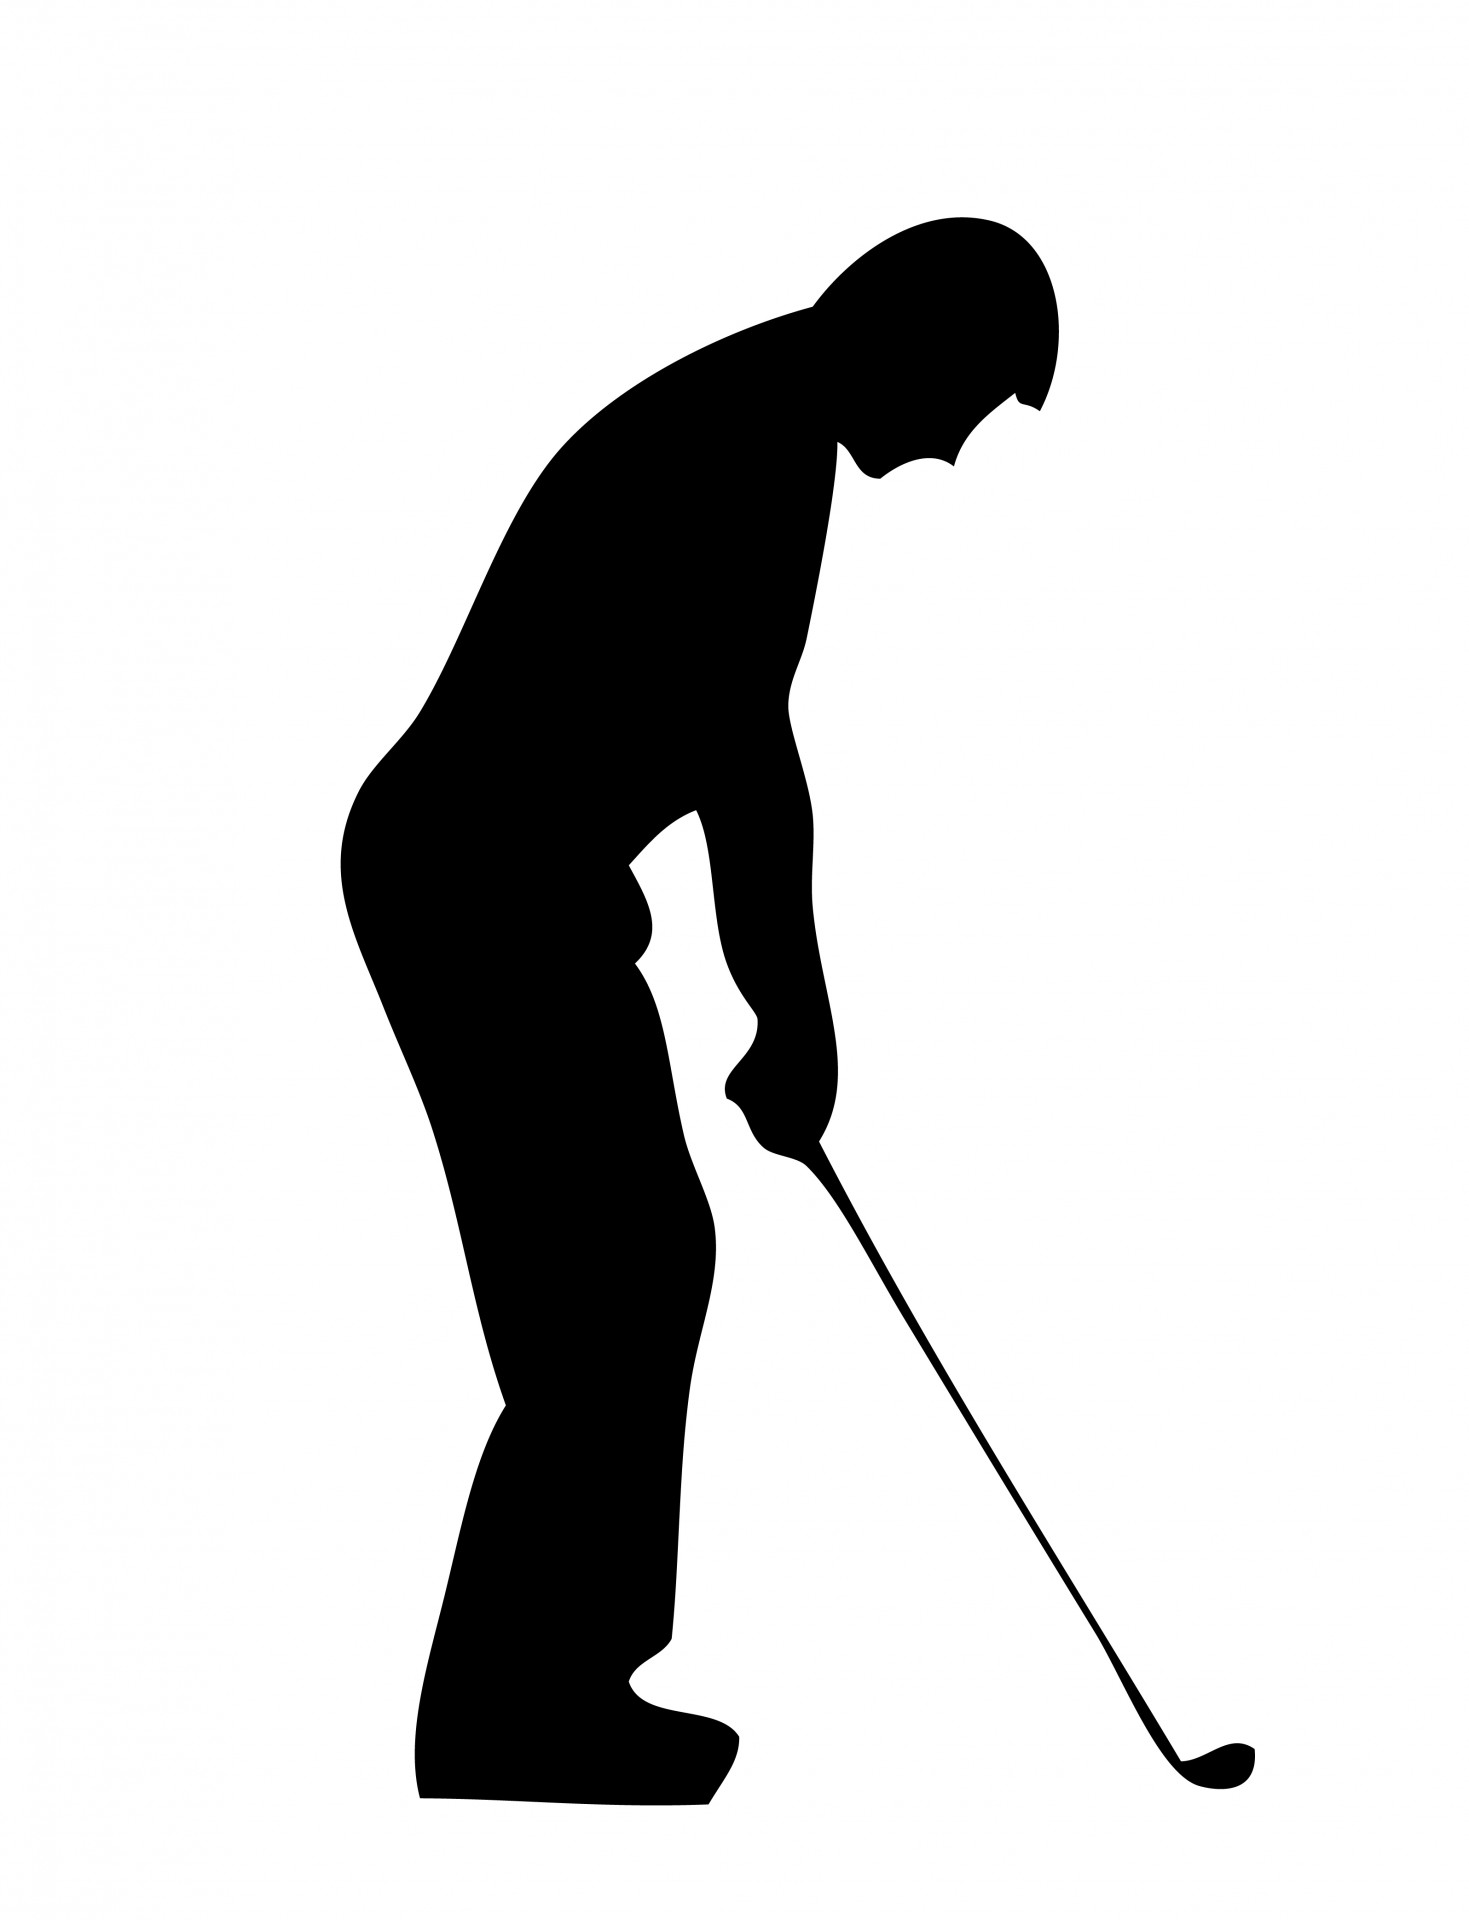 Golf silhouette clipart 3